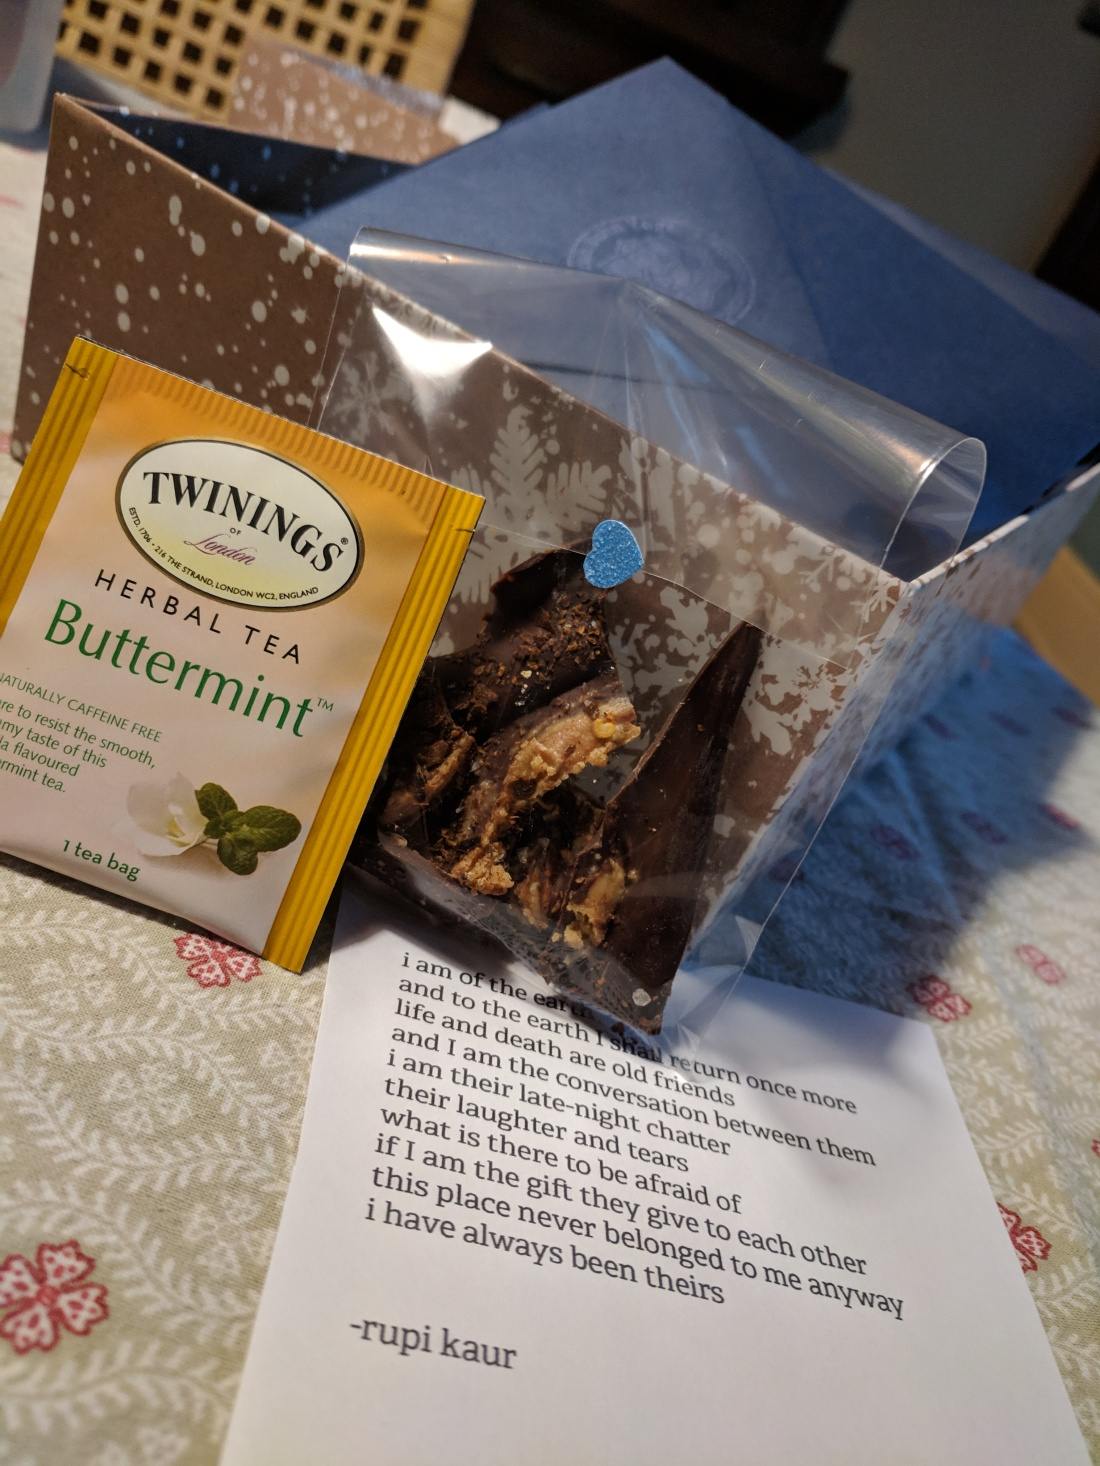 Buttermint tea packet, spicy chocolate bark and rupi kaur poem